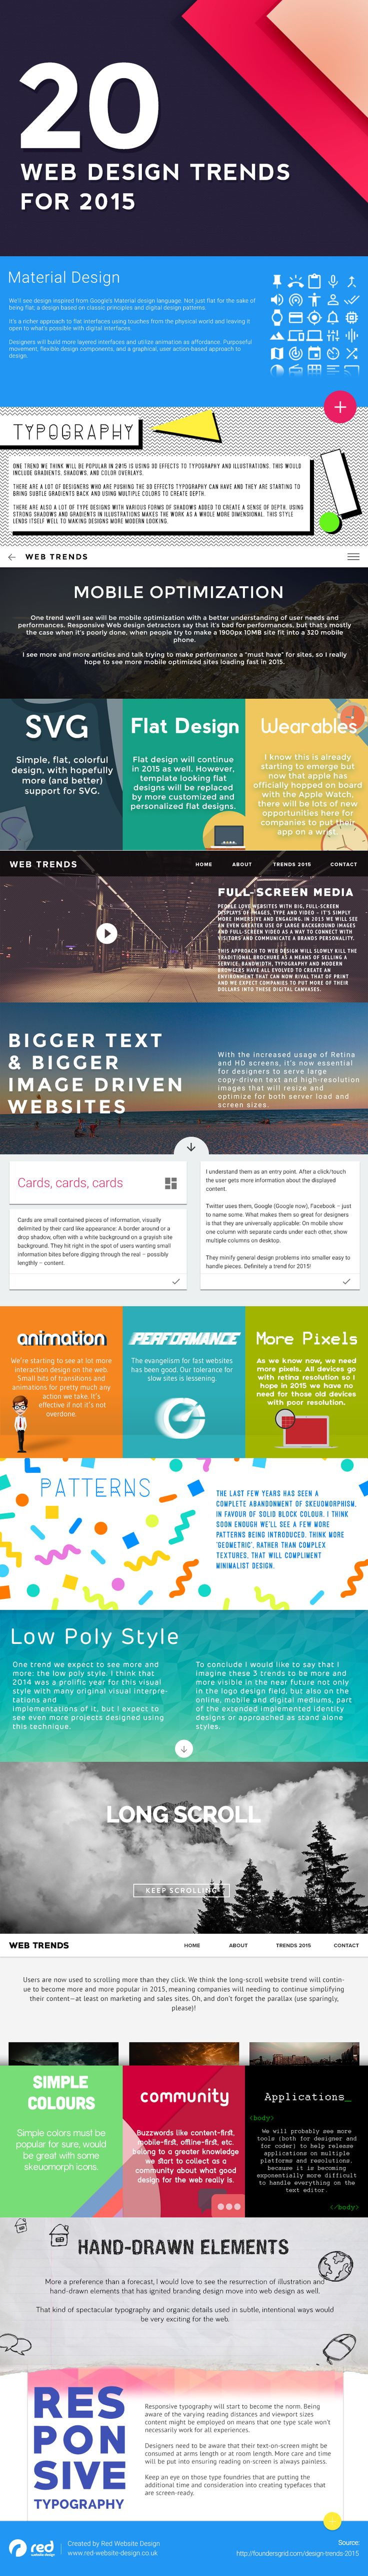 The #web design industry has seen many changes over the years. With new technology giving rise to new screen sizes and methods of accessing the internet those trends are expected to change quite remarkably over the next 12 months or so too. Red Website Design have listed the 20 design #trends they expect to feature heavily in 2015 in the following infographic.